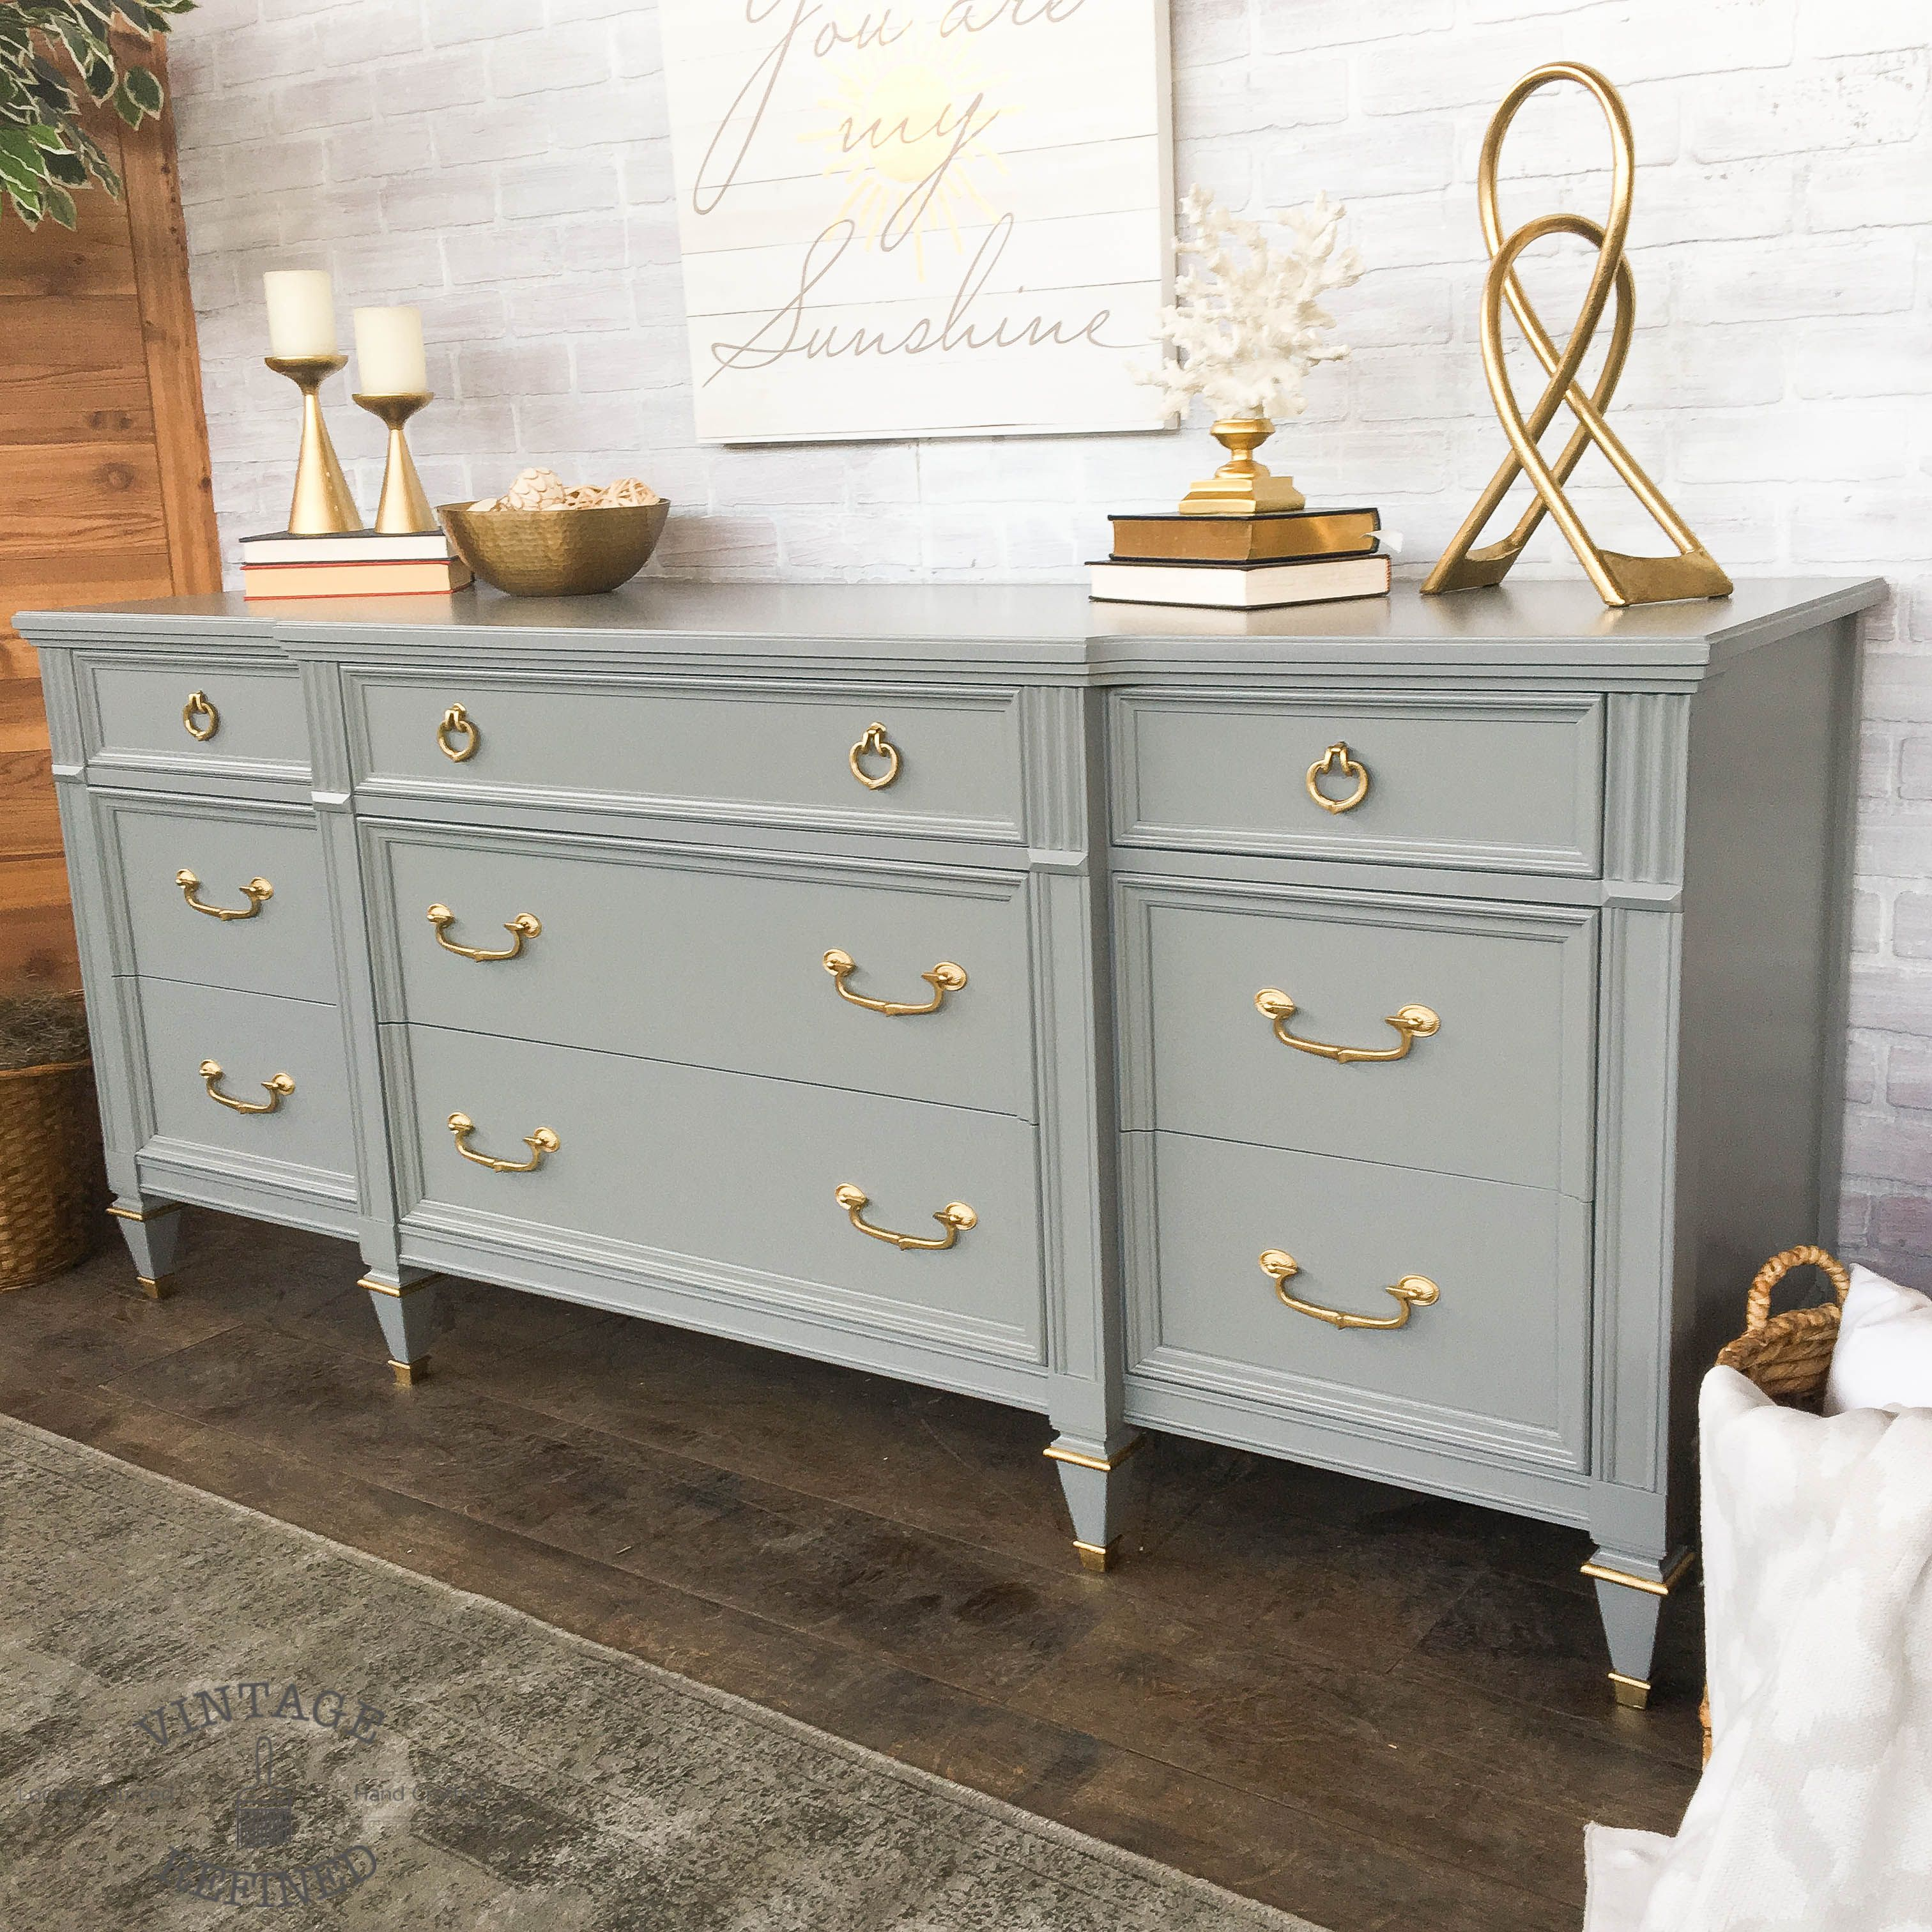 Meuble Peint En Gris Grey Painted Dresser With Gold Hardware Painted Furniture